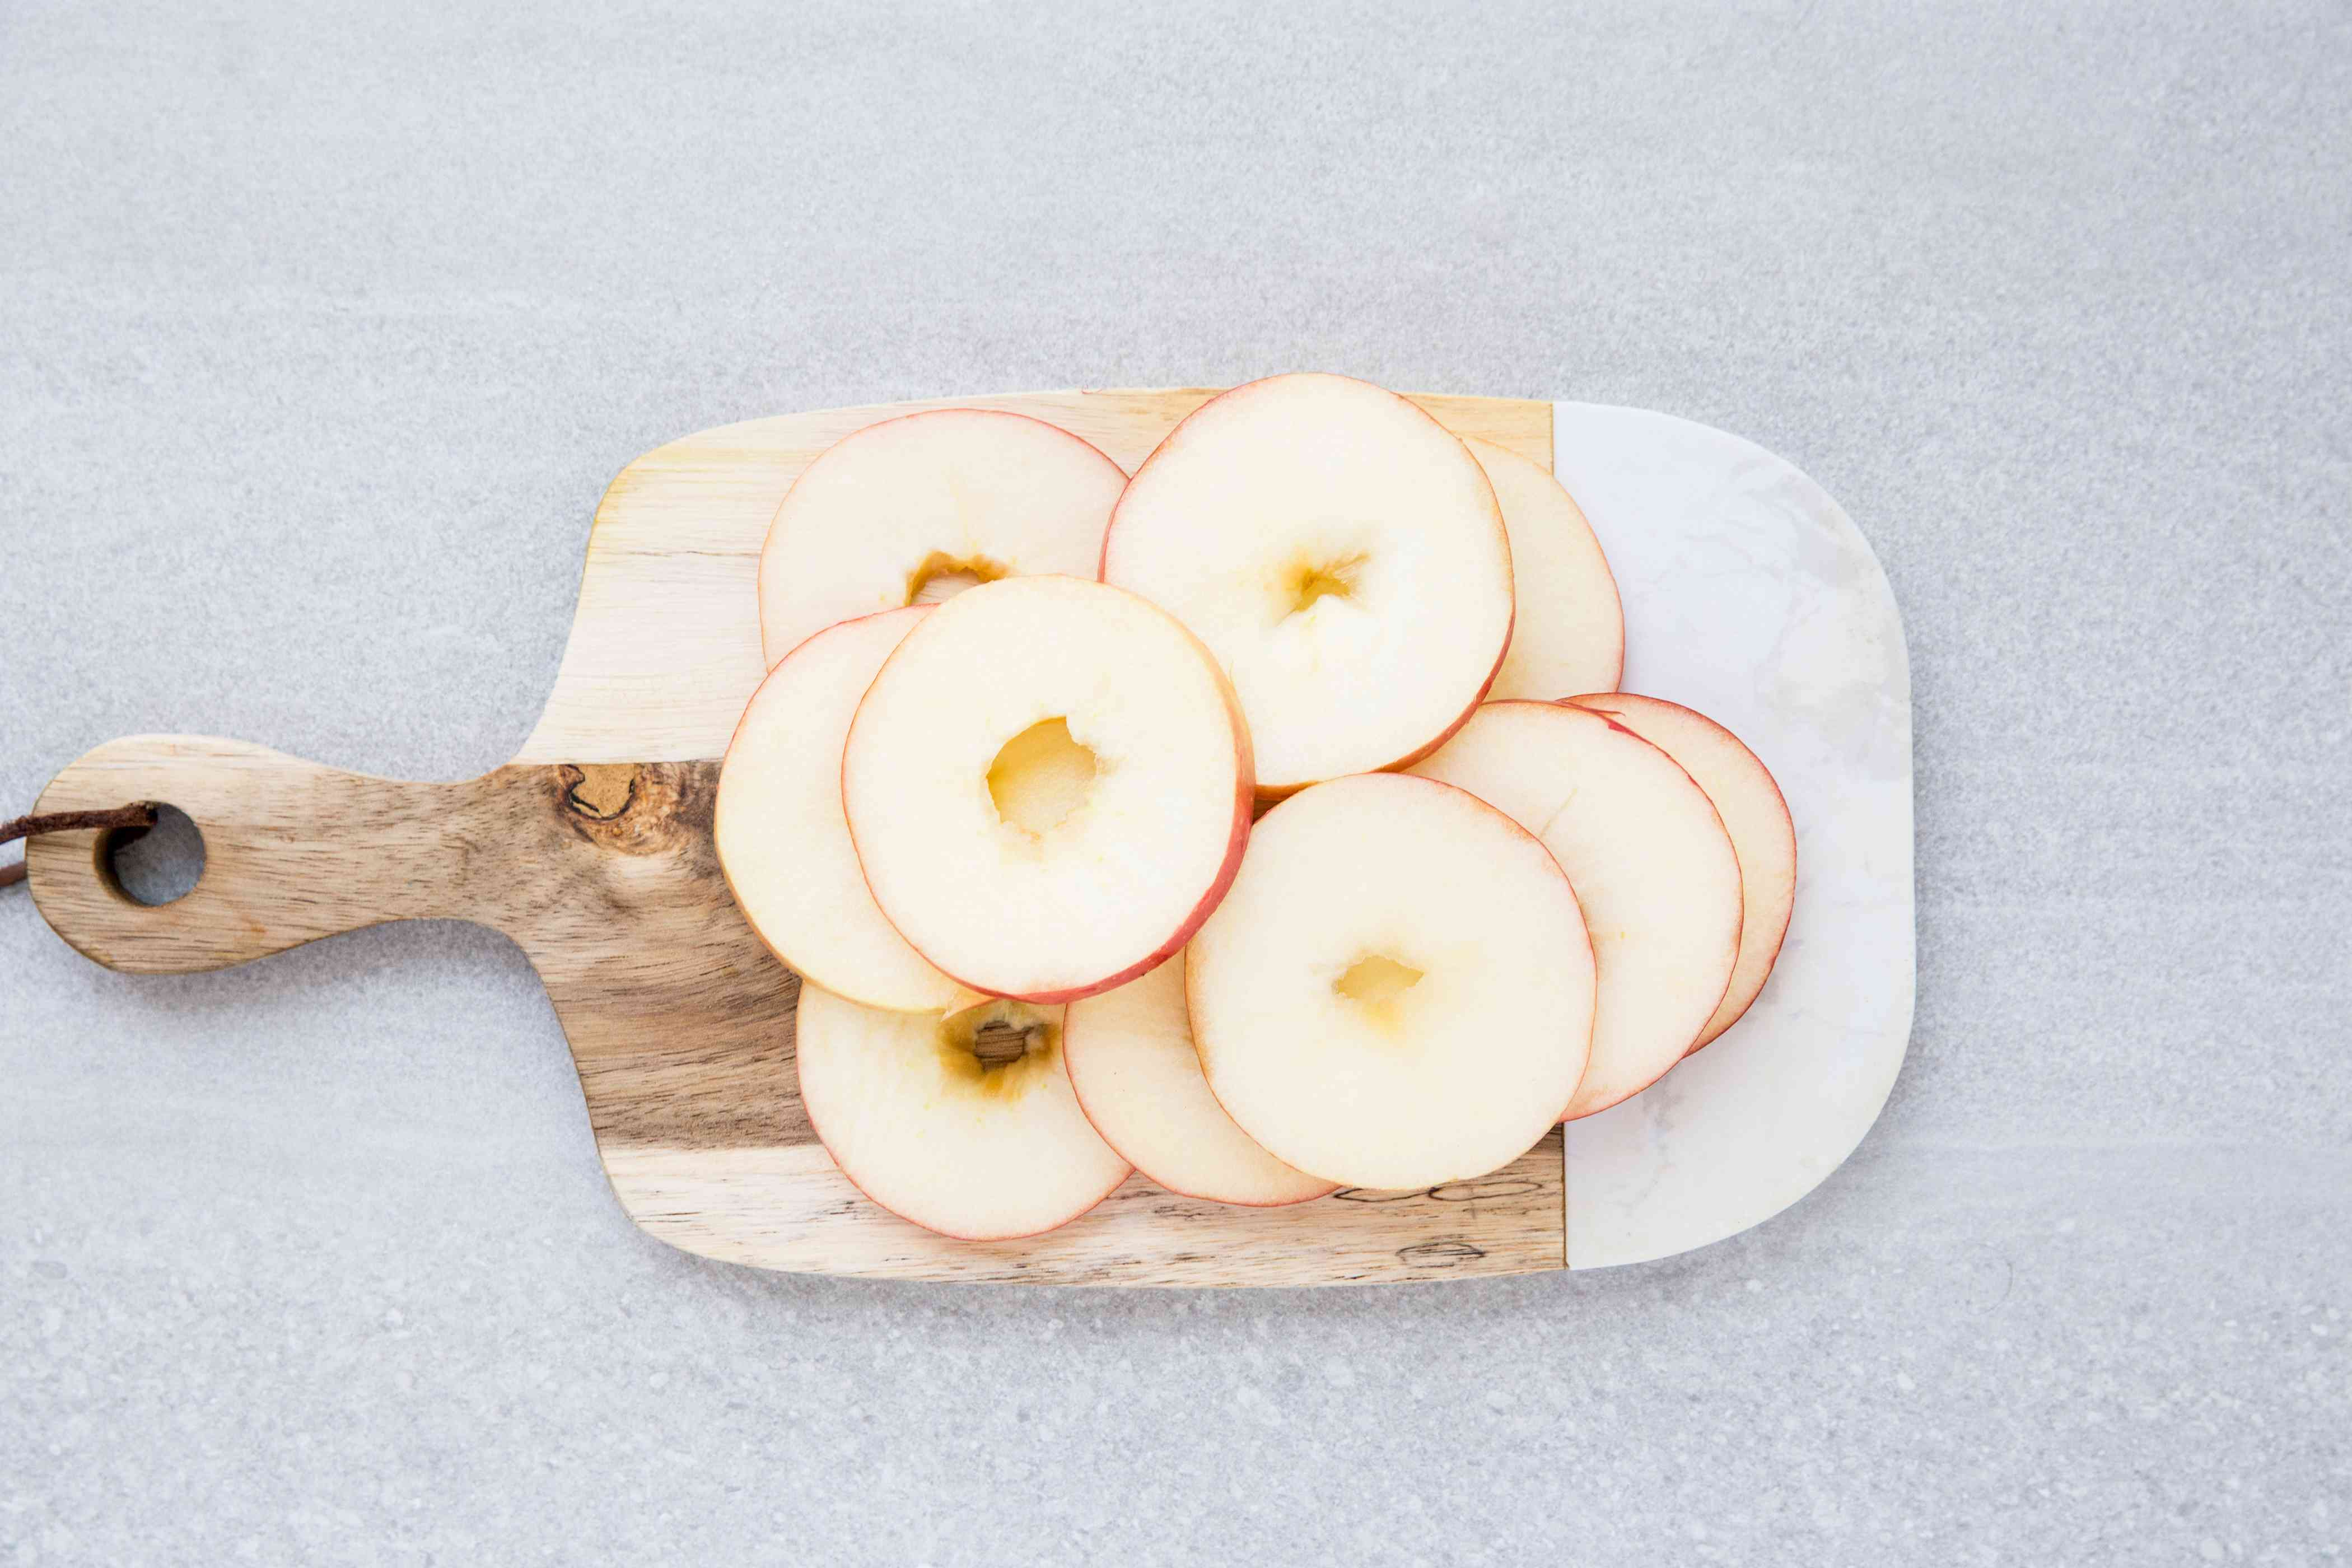 Core the apples and cut them into slices